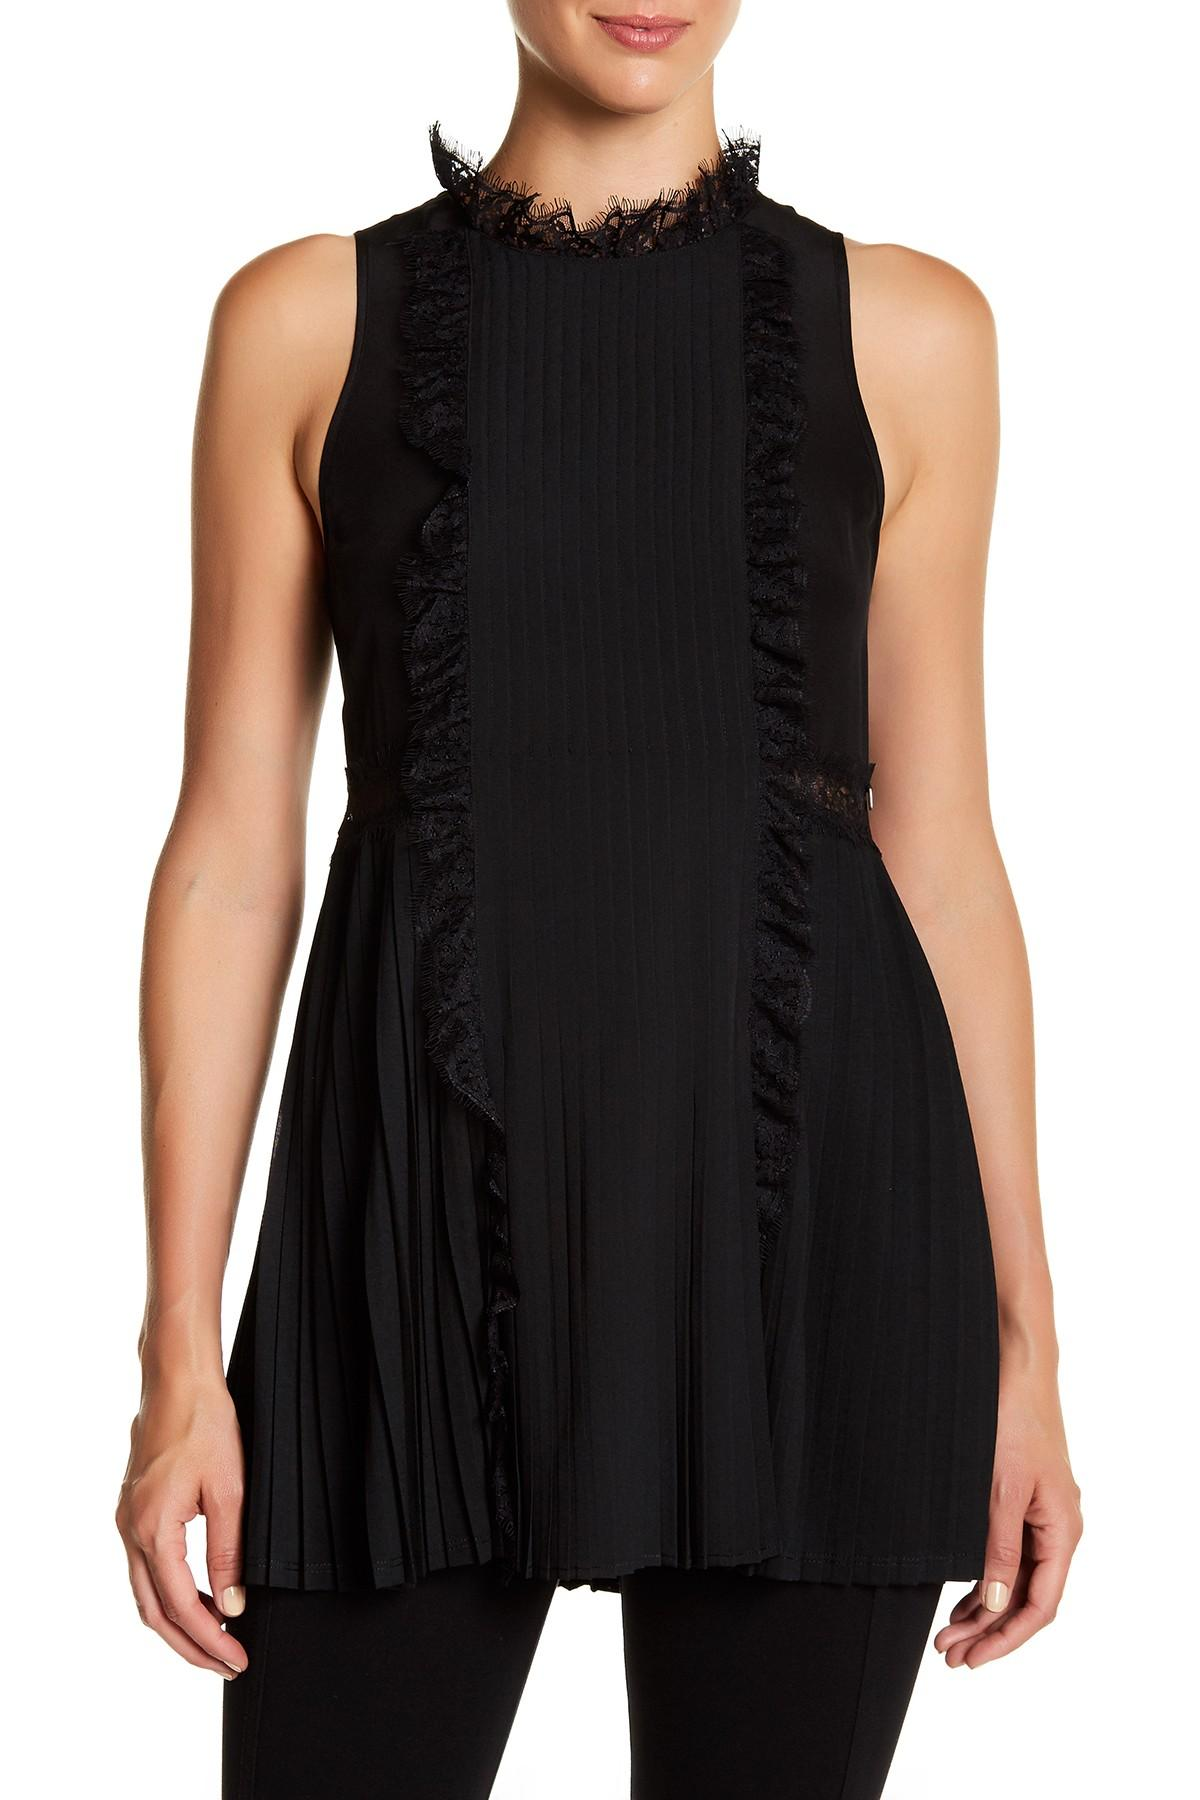 Yoana baraschi celestial garden lace dress nordstrom rack - Gallery Previously Sold At Nordstrom Rack